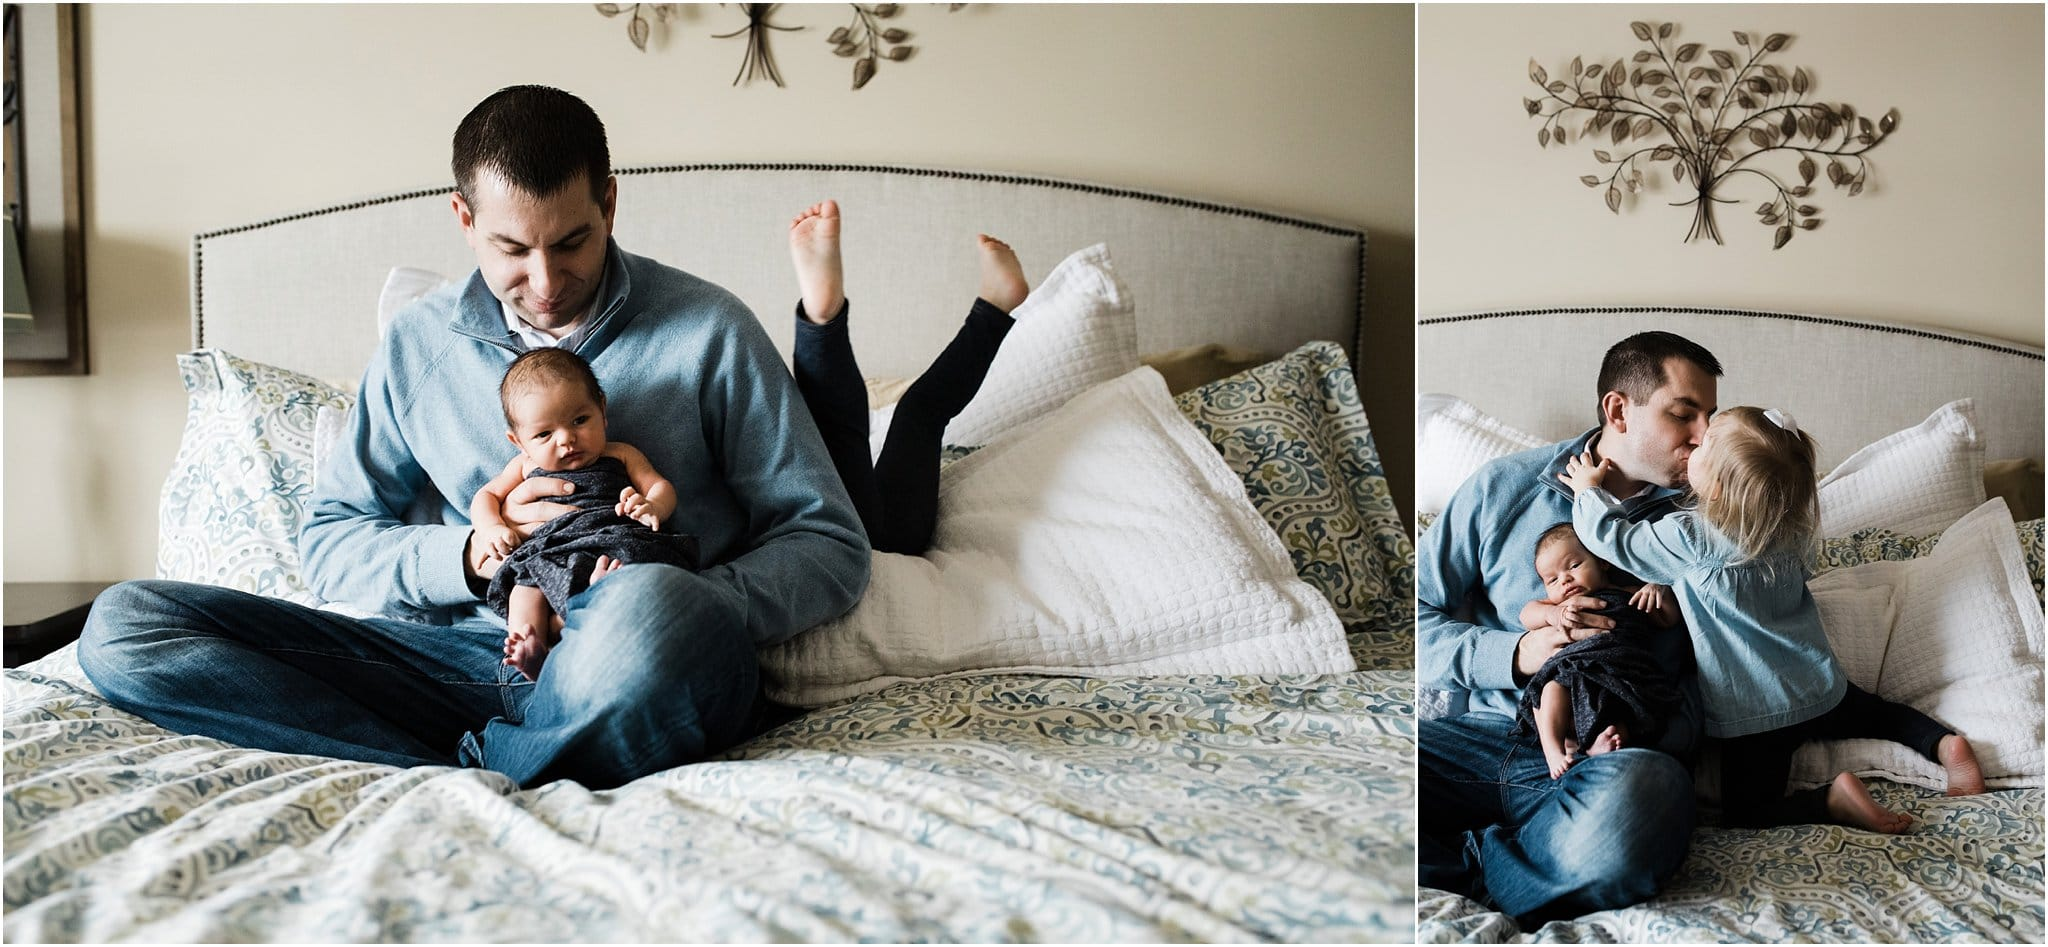 photos of father with newborn and toddler